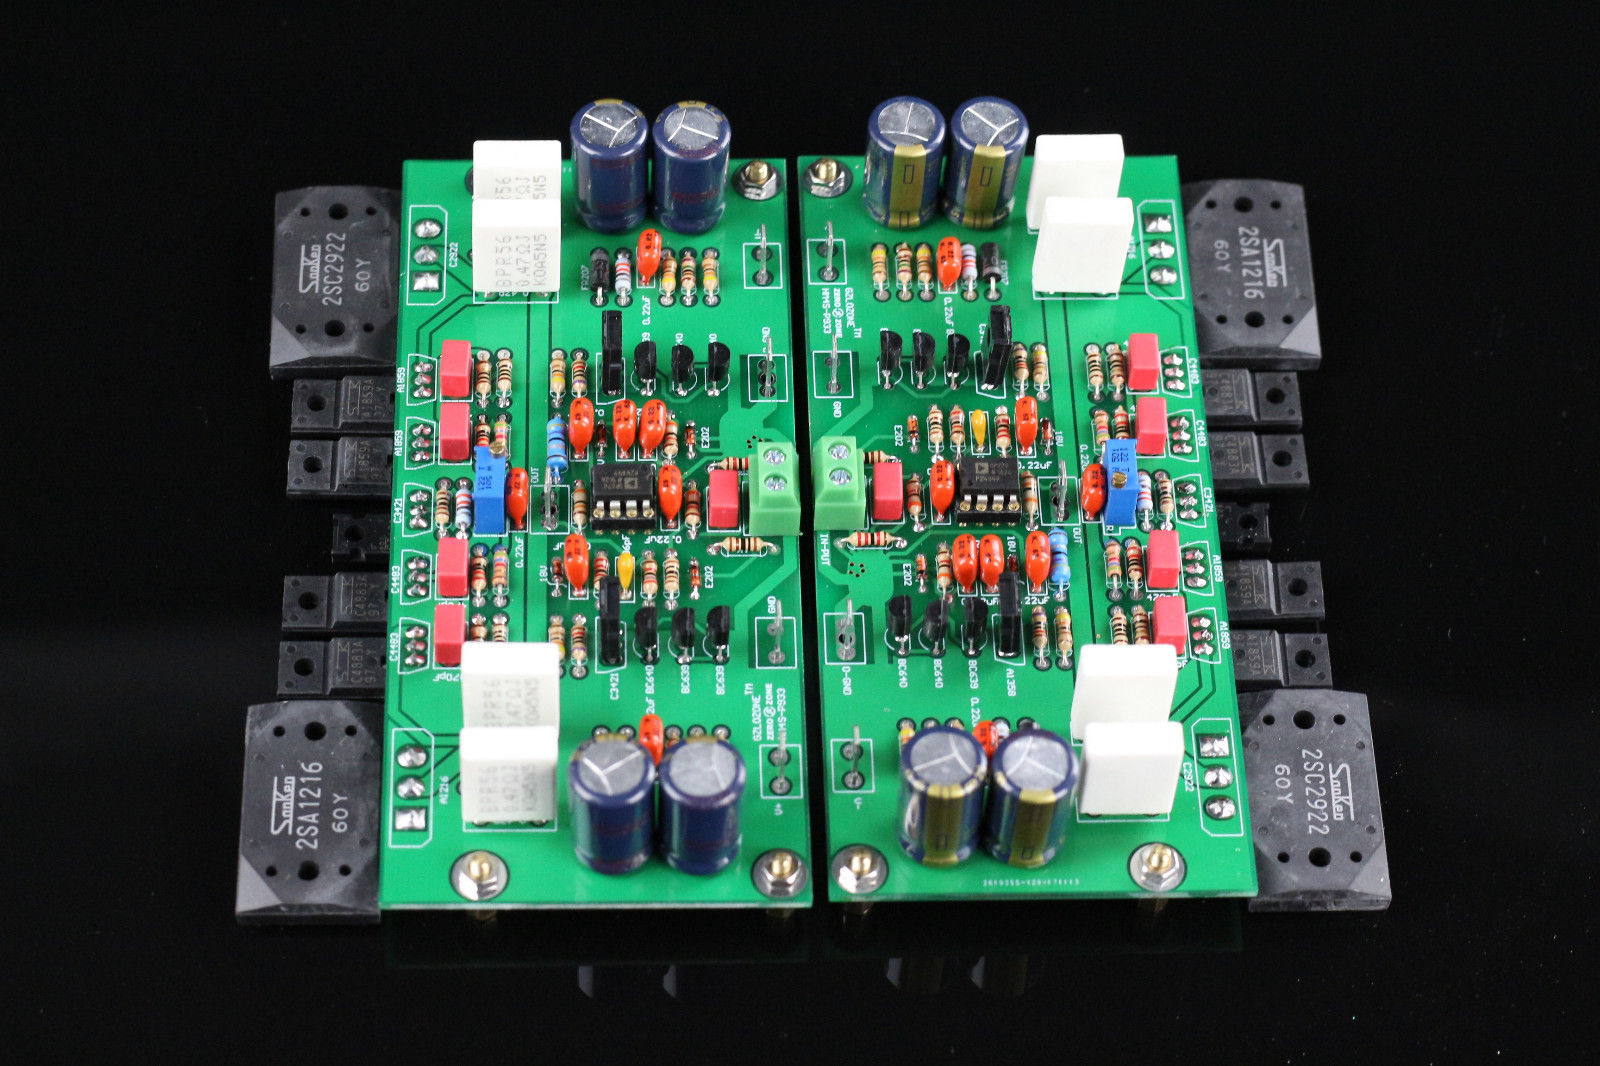 ZEROZONE One Pair Assembeld HM4S HIFI Power Amplifier Board Base On Burmester 933 Amplifier серова м горячее дельце